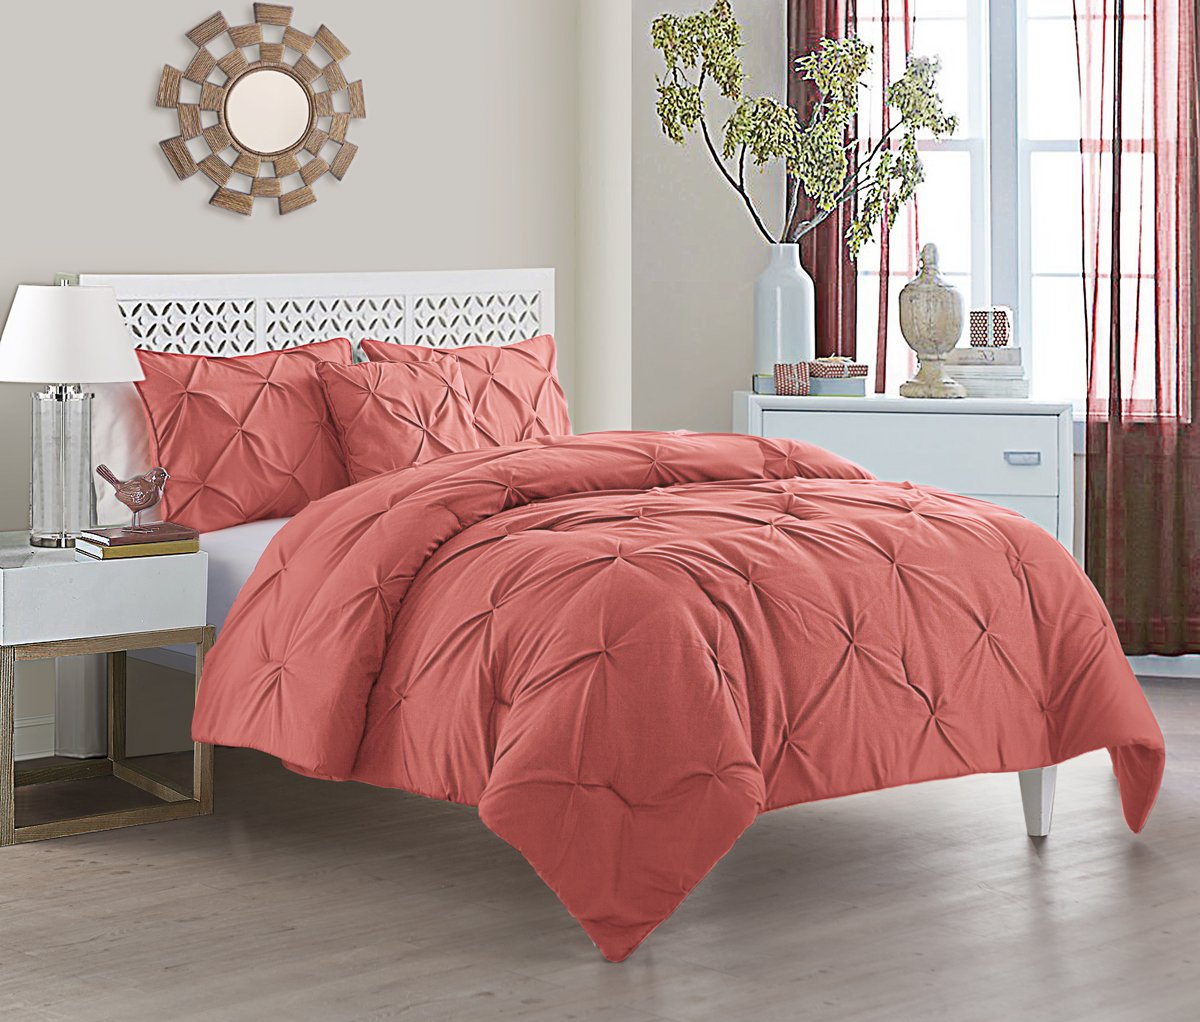 VCNY Home Carmen Comforter Set Queen Coral 4 Piece